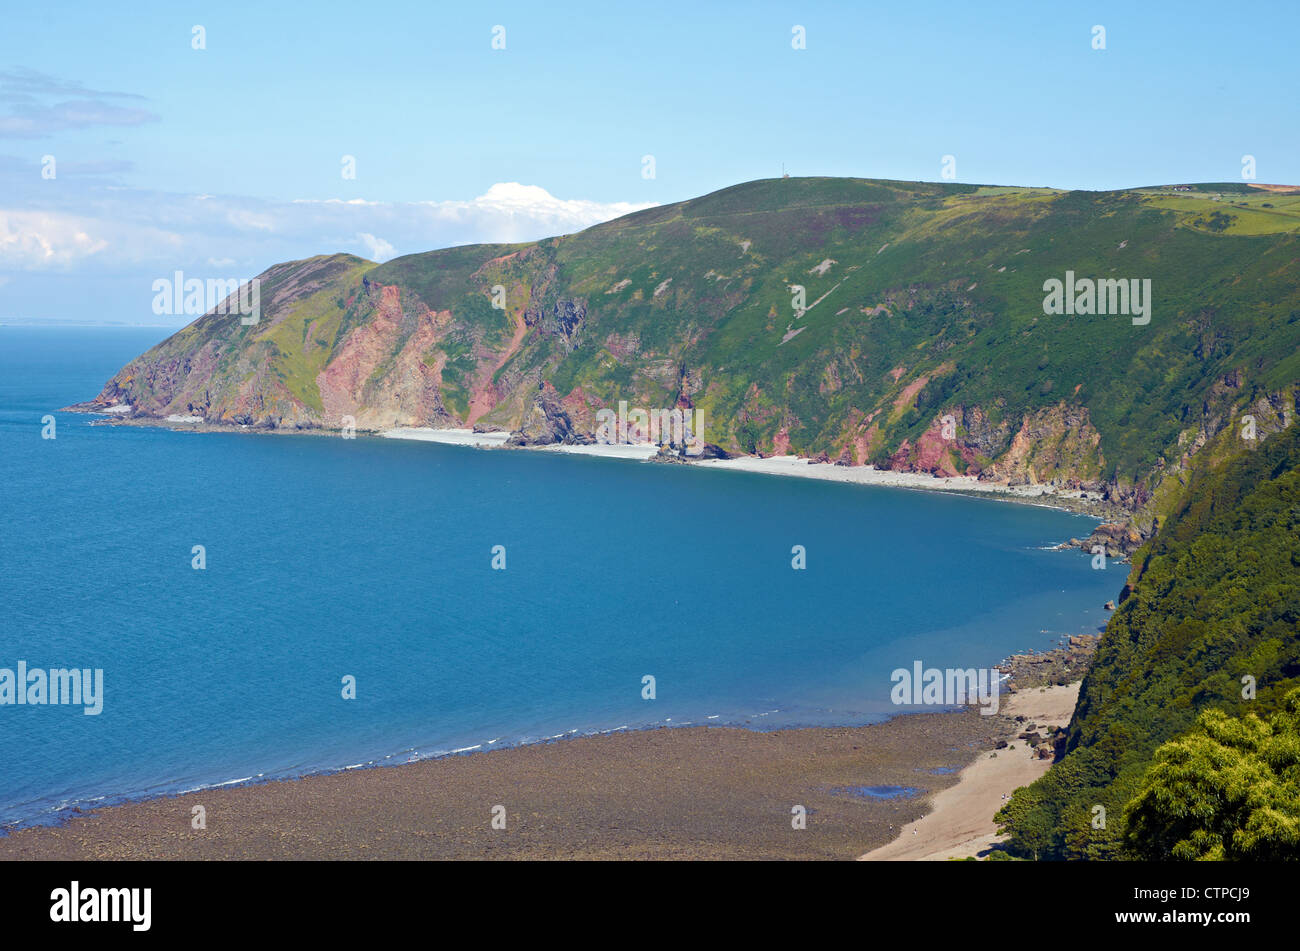 Beach at Lynton, Devon showing rocky and stony nature with steep Old Red Sandstone cliffs and Exmoor moorland seen - Stock Image